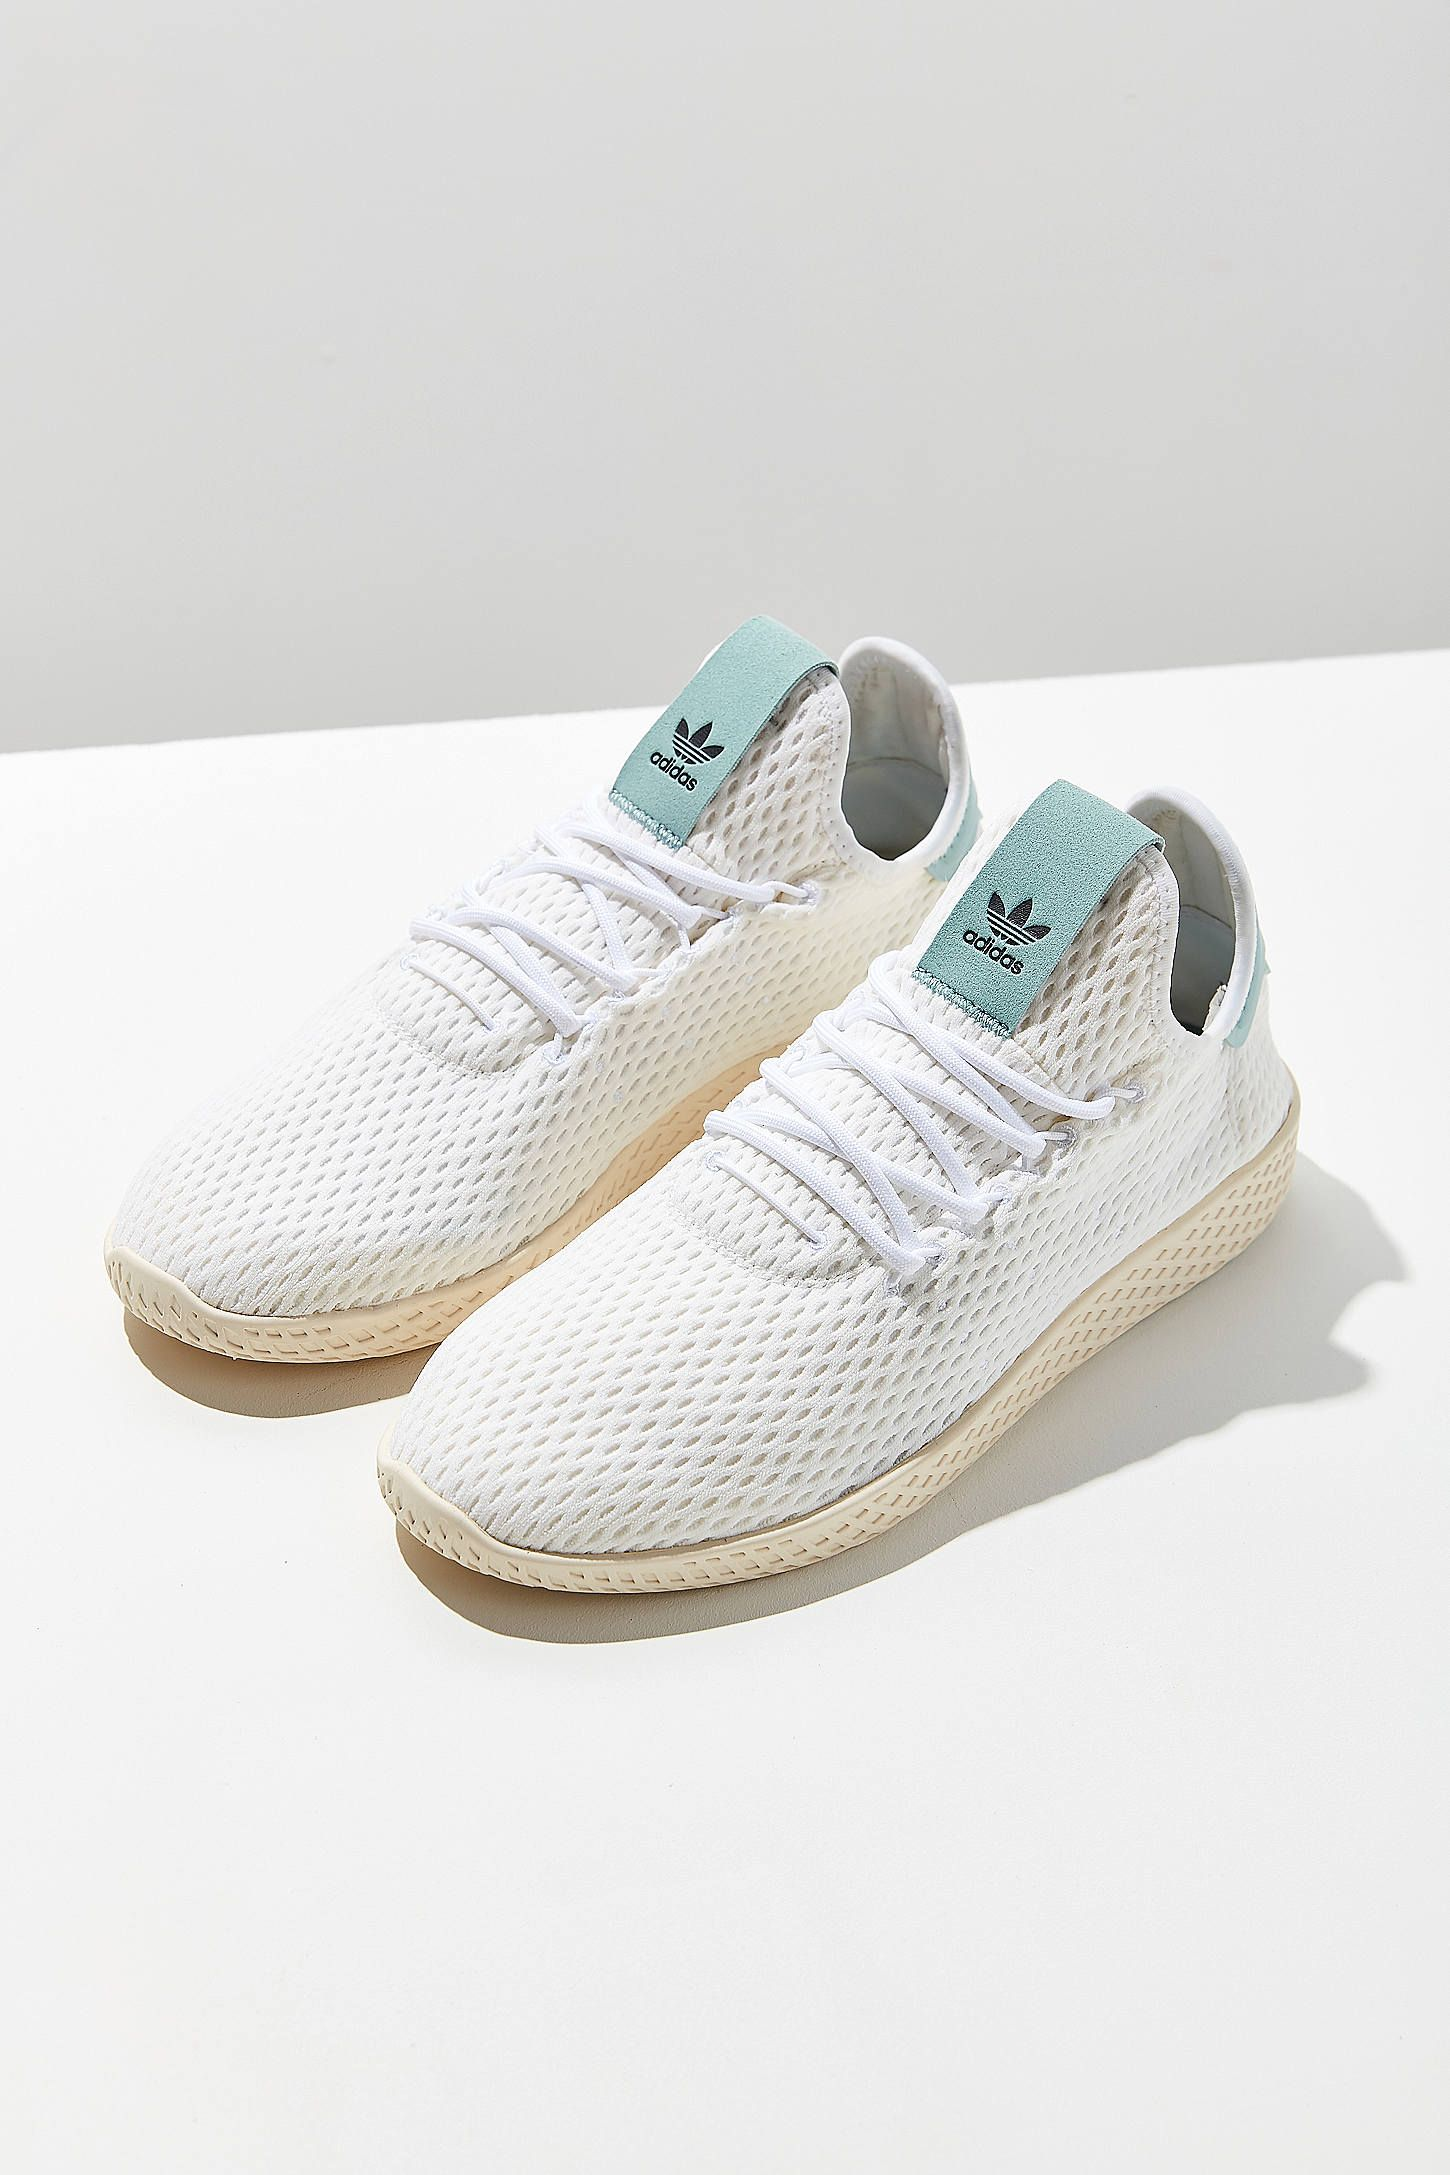 Shop adidas Originals X Pharrell Williams Tennis Hu Sneaker at Urban  Outfitters today. We carry all the latest styles c72888d5b